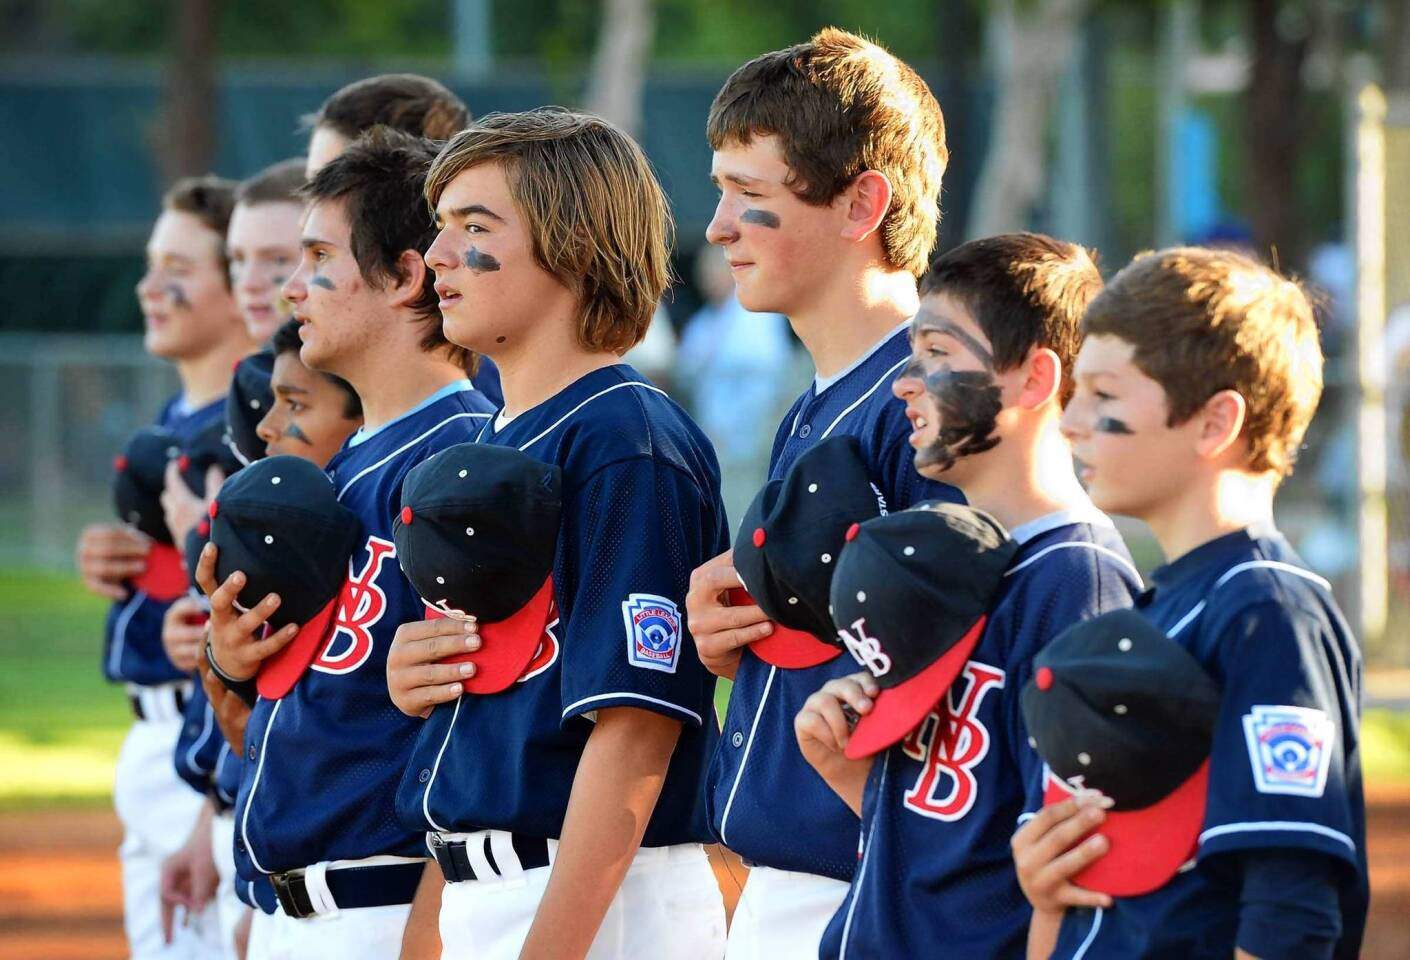 The Newport Beach Little League Major Division All-Stars team at the start of the District 55 semifinal game against Aliso Viejo at Saturday.